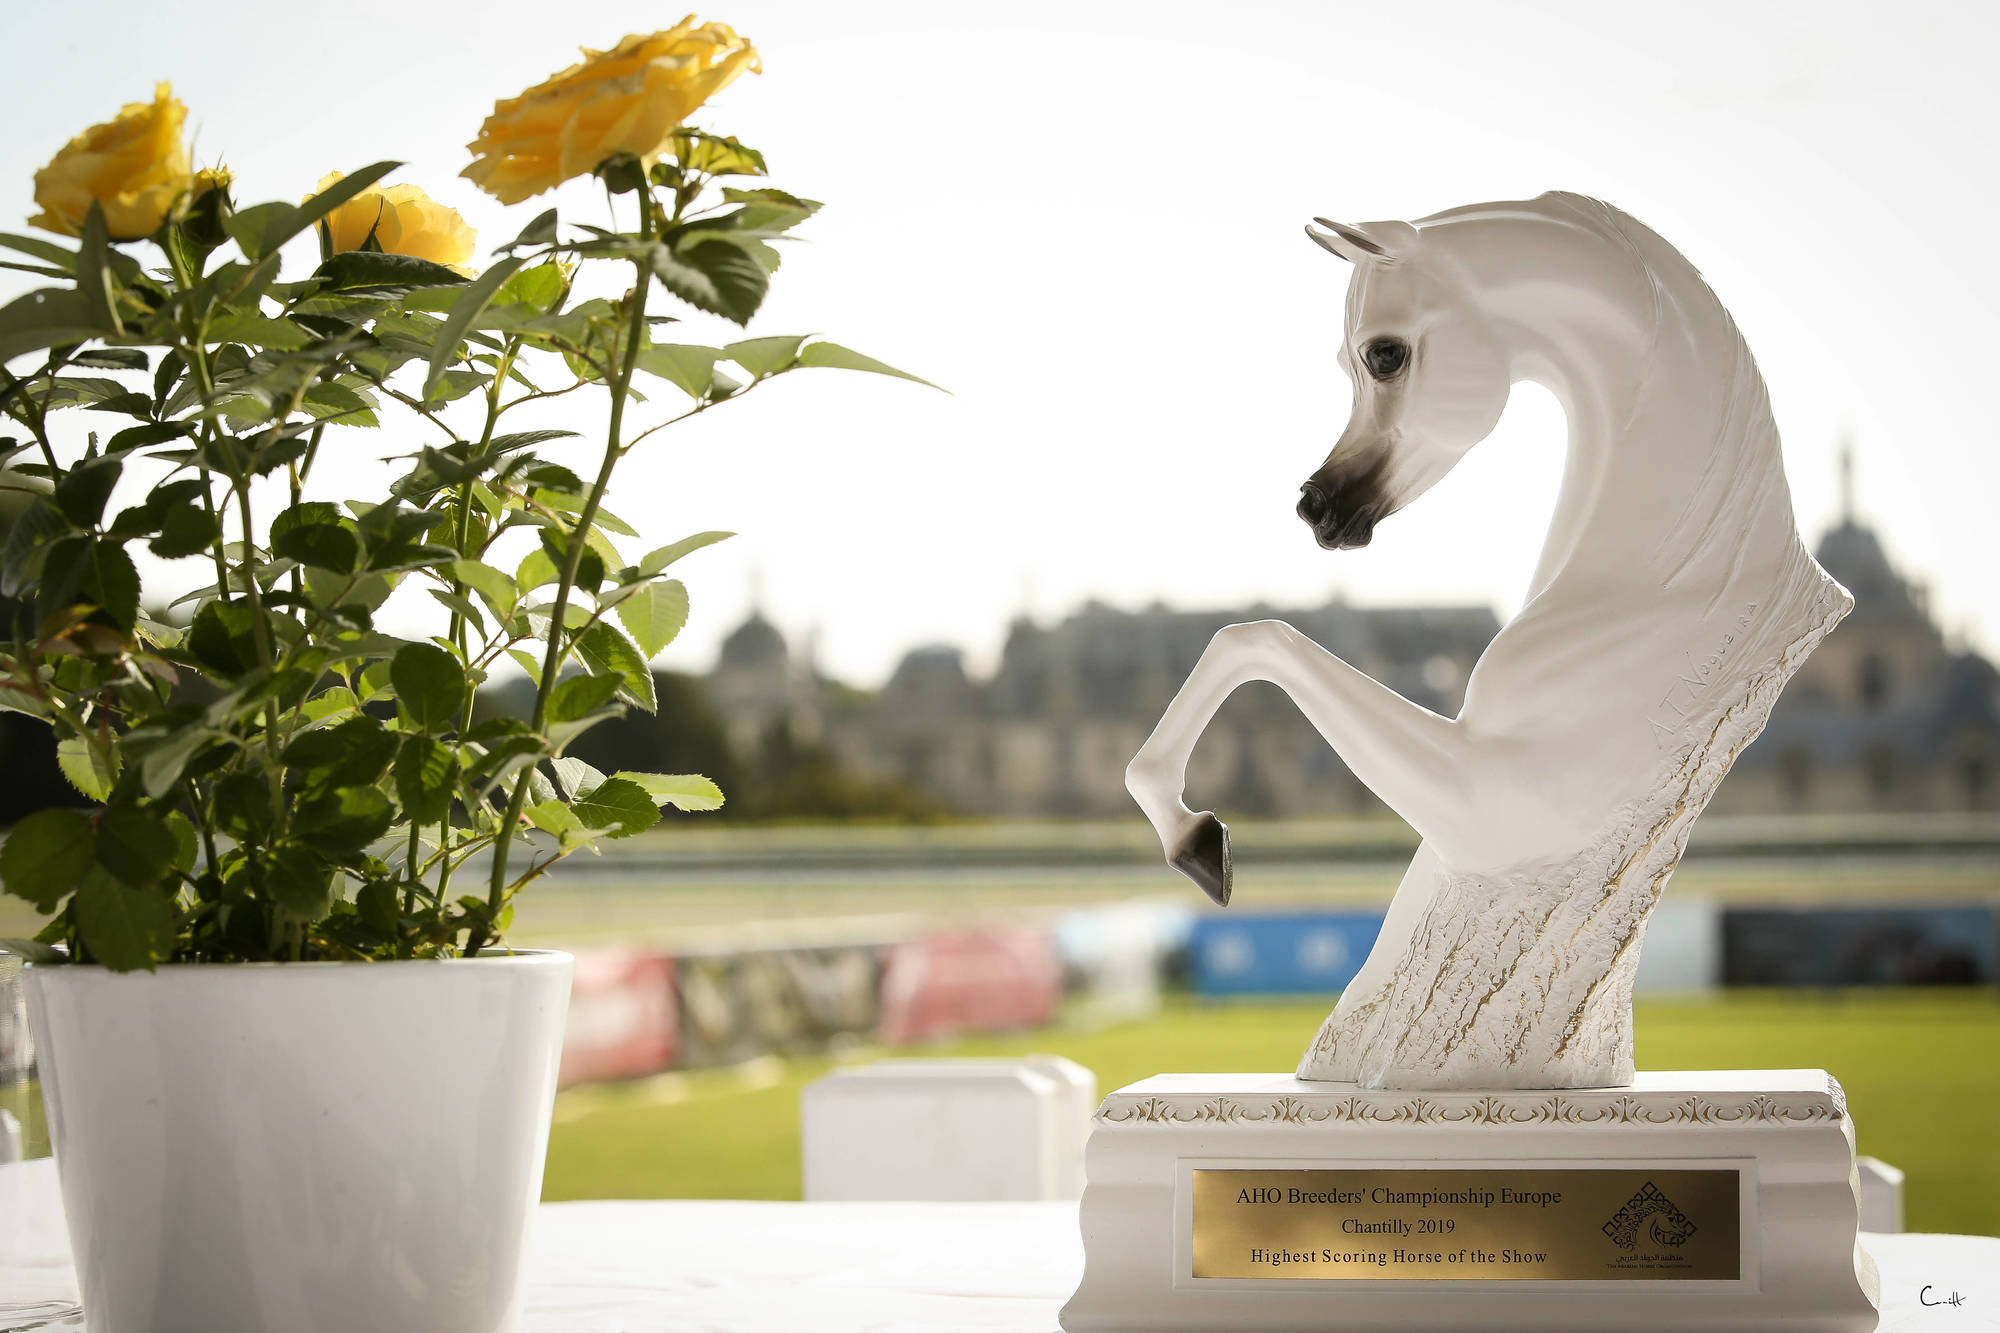 Results - AHO Breeders' Championship Europe 2019